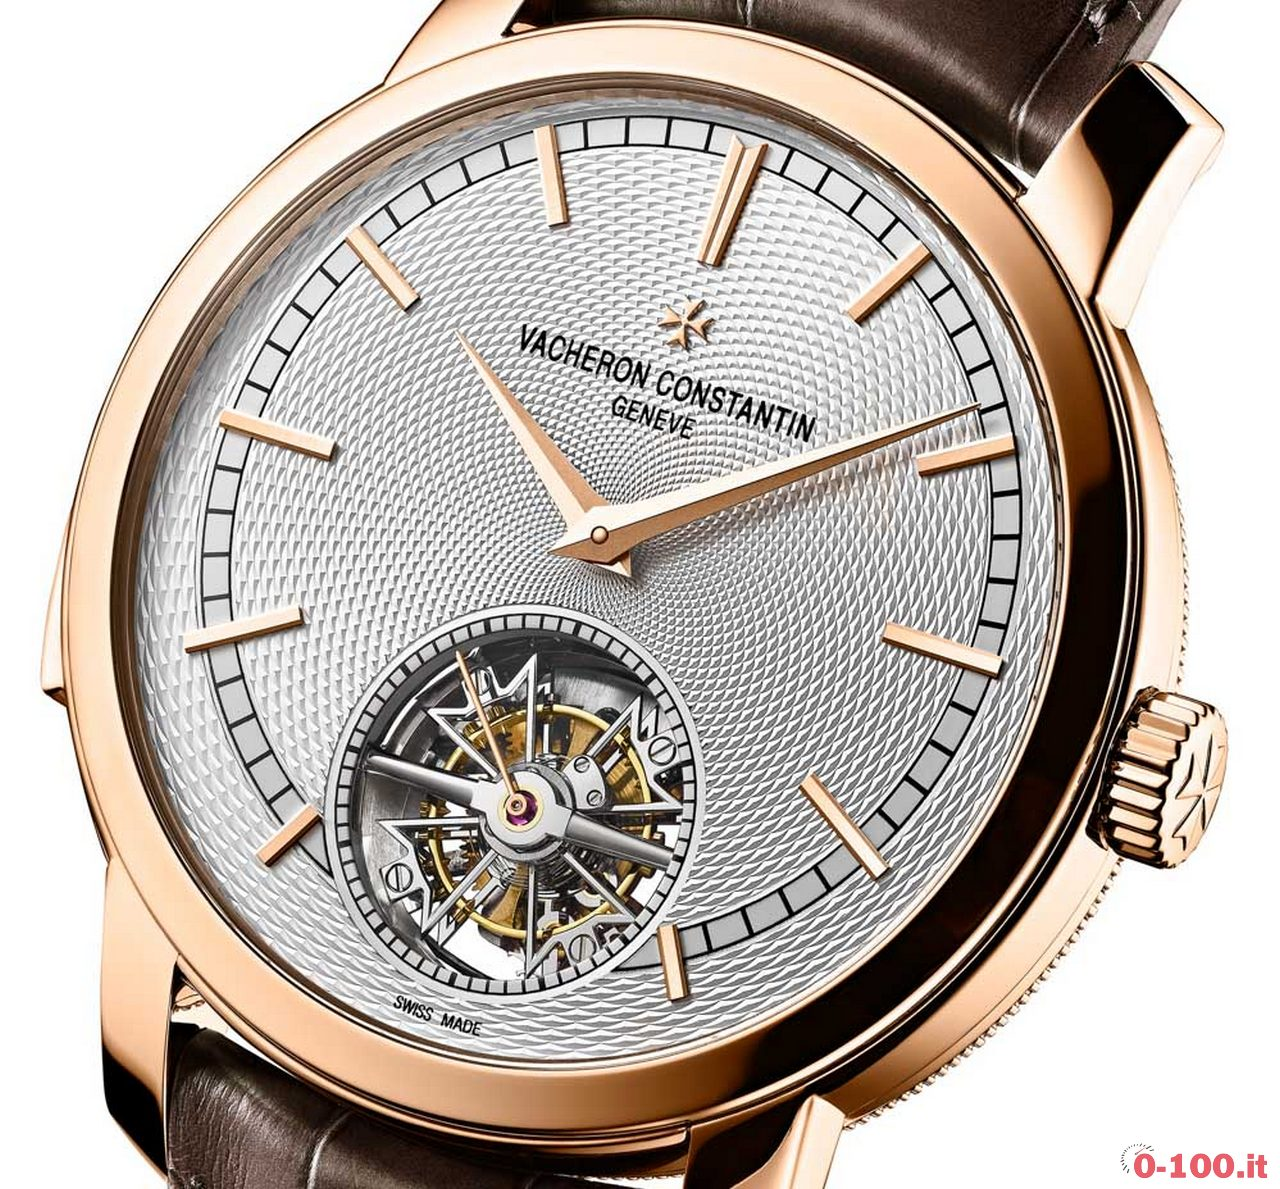 Vacheron-Constantin-Traditionnelle-Minute-Repeater-Tourbillon-aBlogtoWatch-6500t-000r-b324-r-tr-9